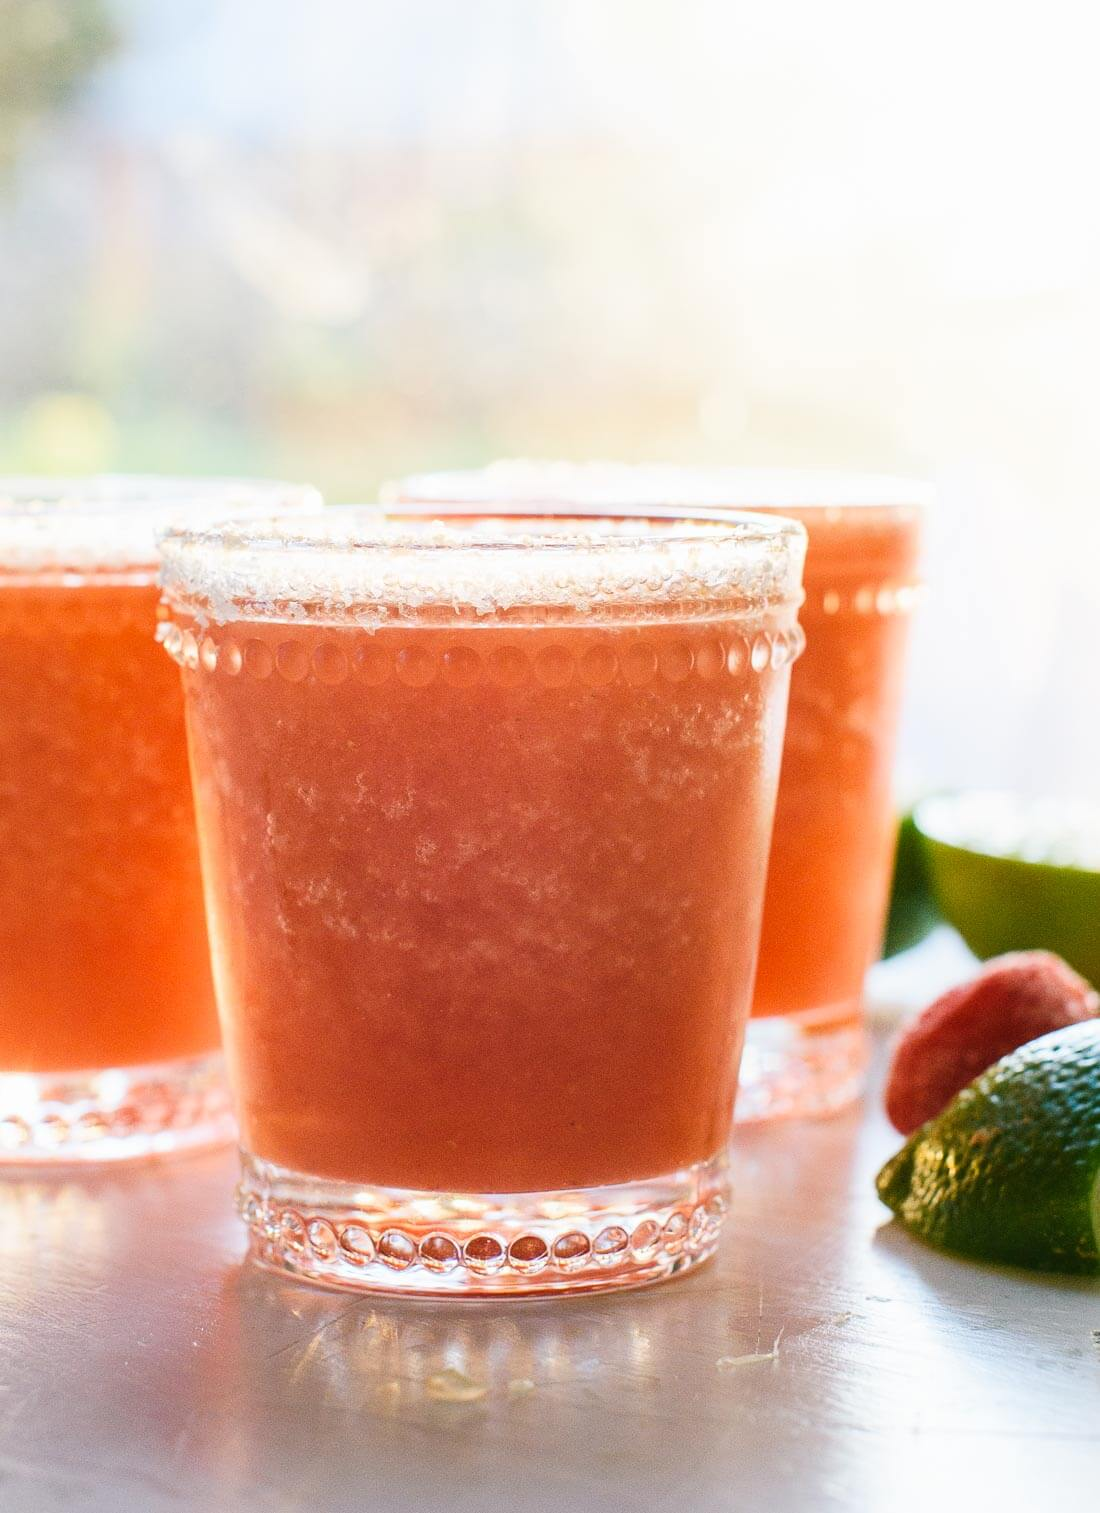 Super refreshing frozen strawberry margaritas, made with all-natural ingredients! Ready in 10 minutes. cookieandkate.com